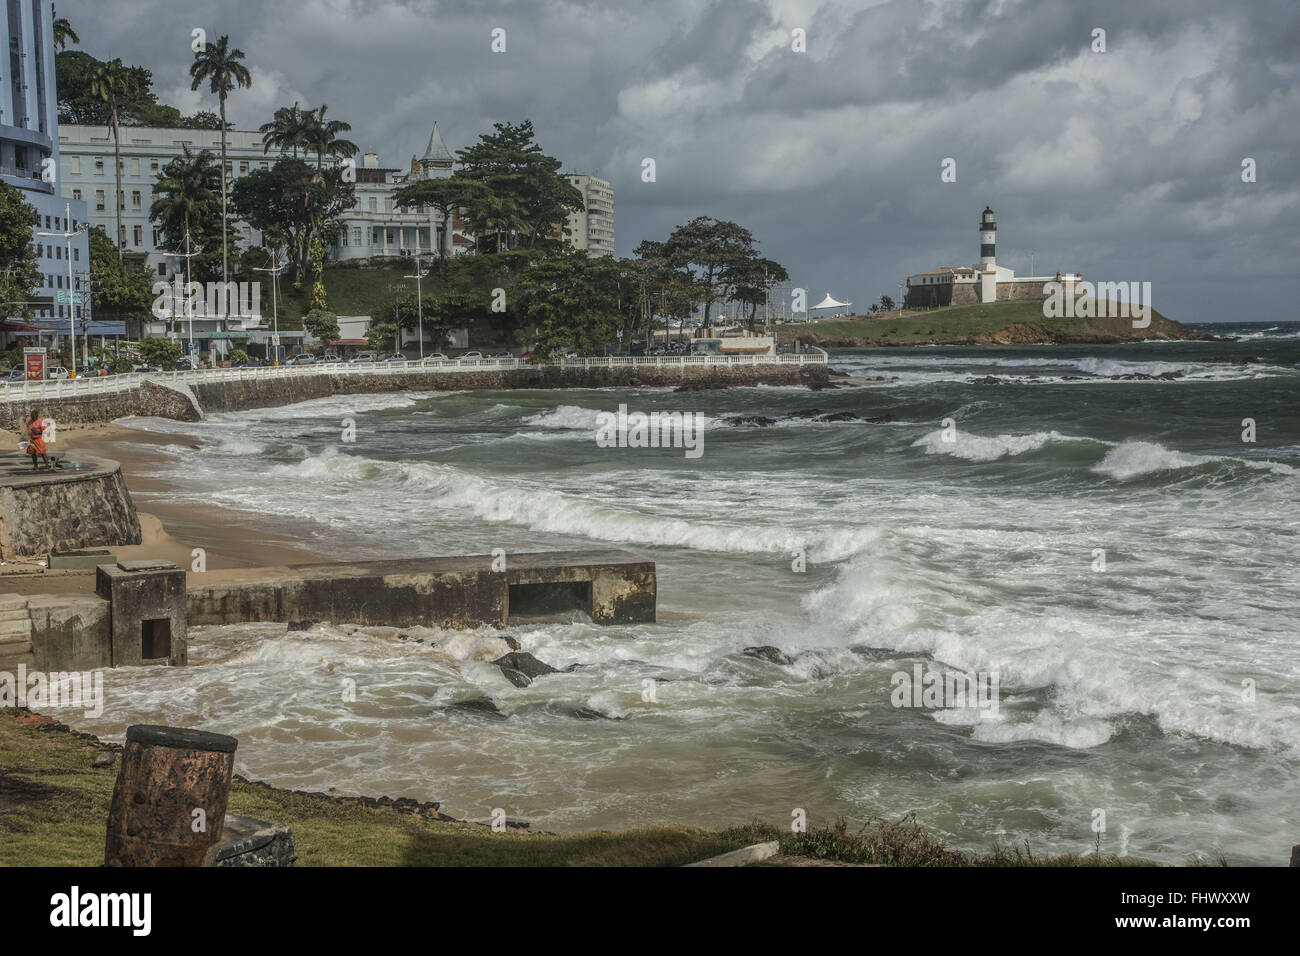 Porto da Barra with Forte de Santo Antonio da Barra and Farol da Barra to the bottom - Stock Image